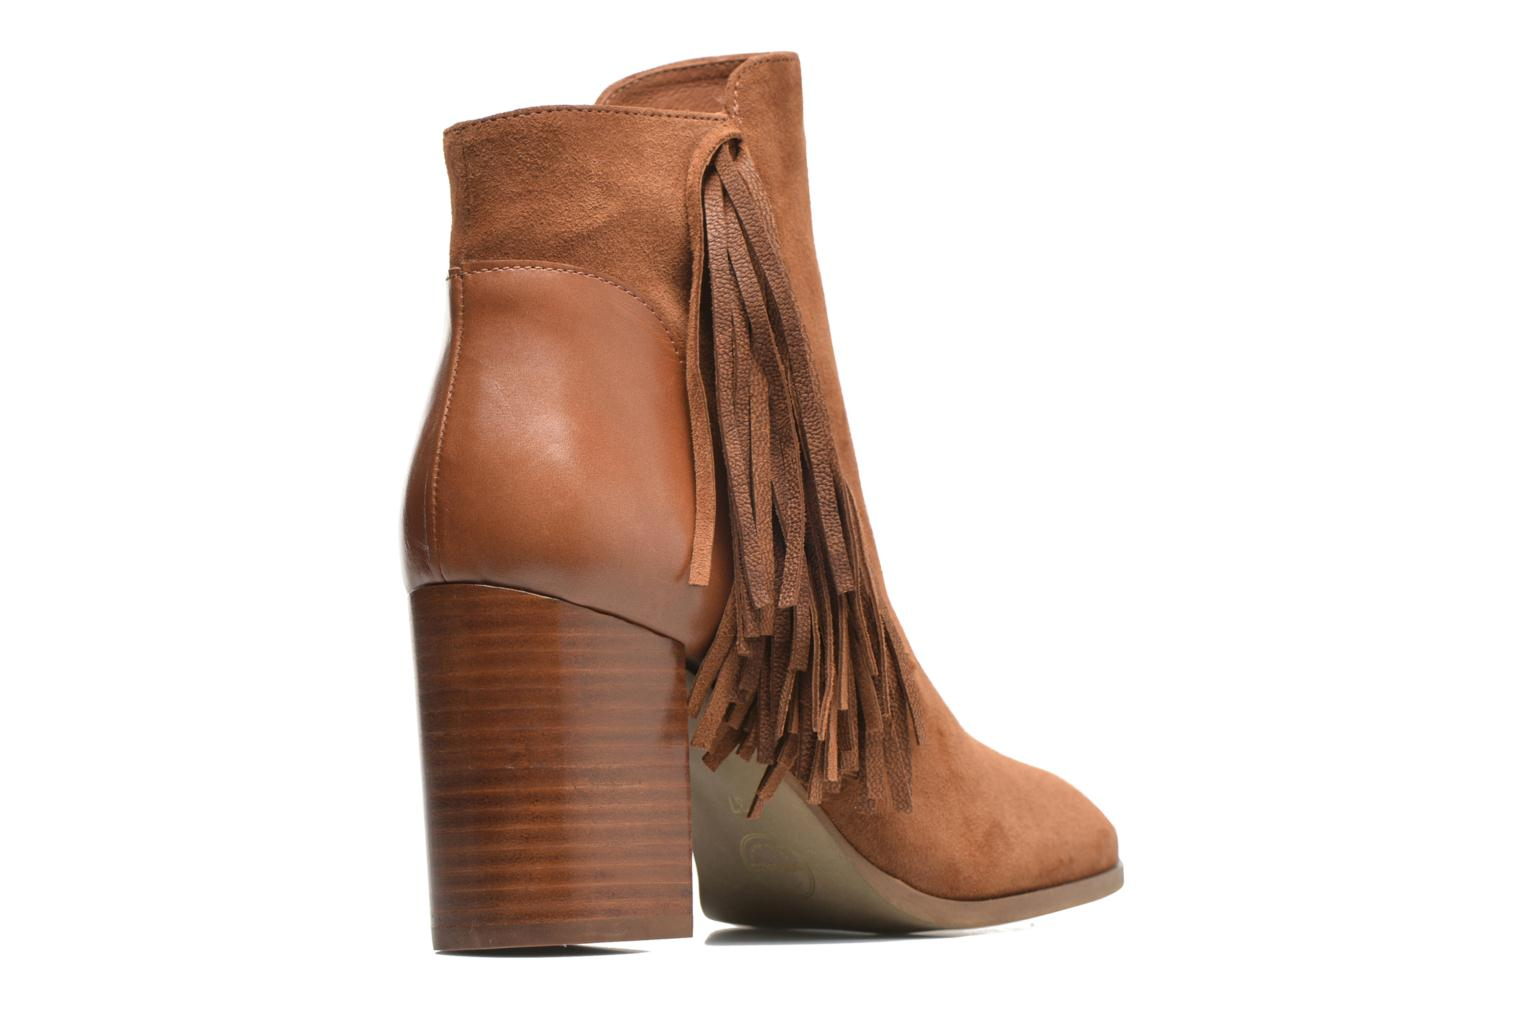 Bottines et boots Made by SARENZA See Ya Topanga #8 Marron vue face